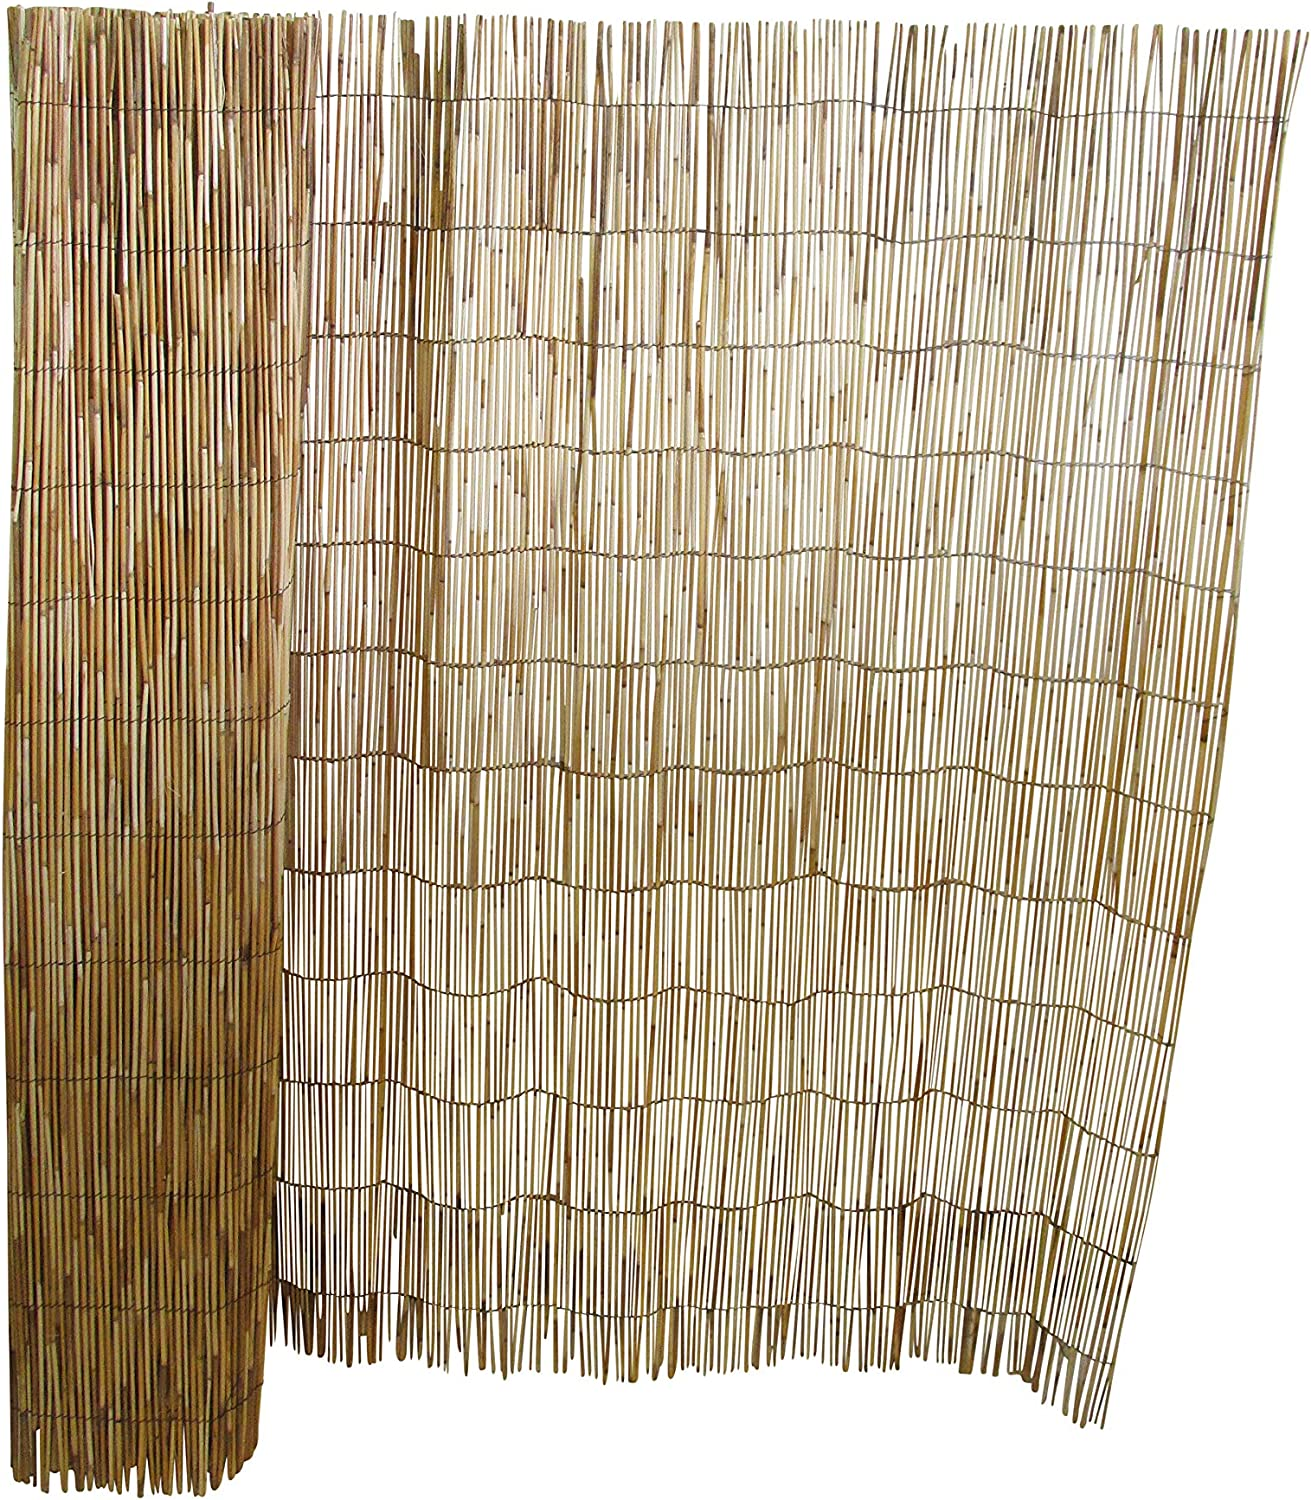 Master Garden Products RF-4 Natural Reed Fence, 4'H x 14'L